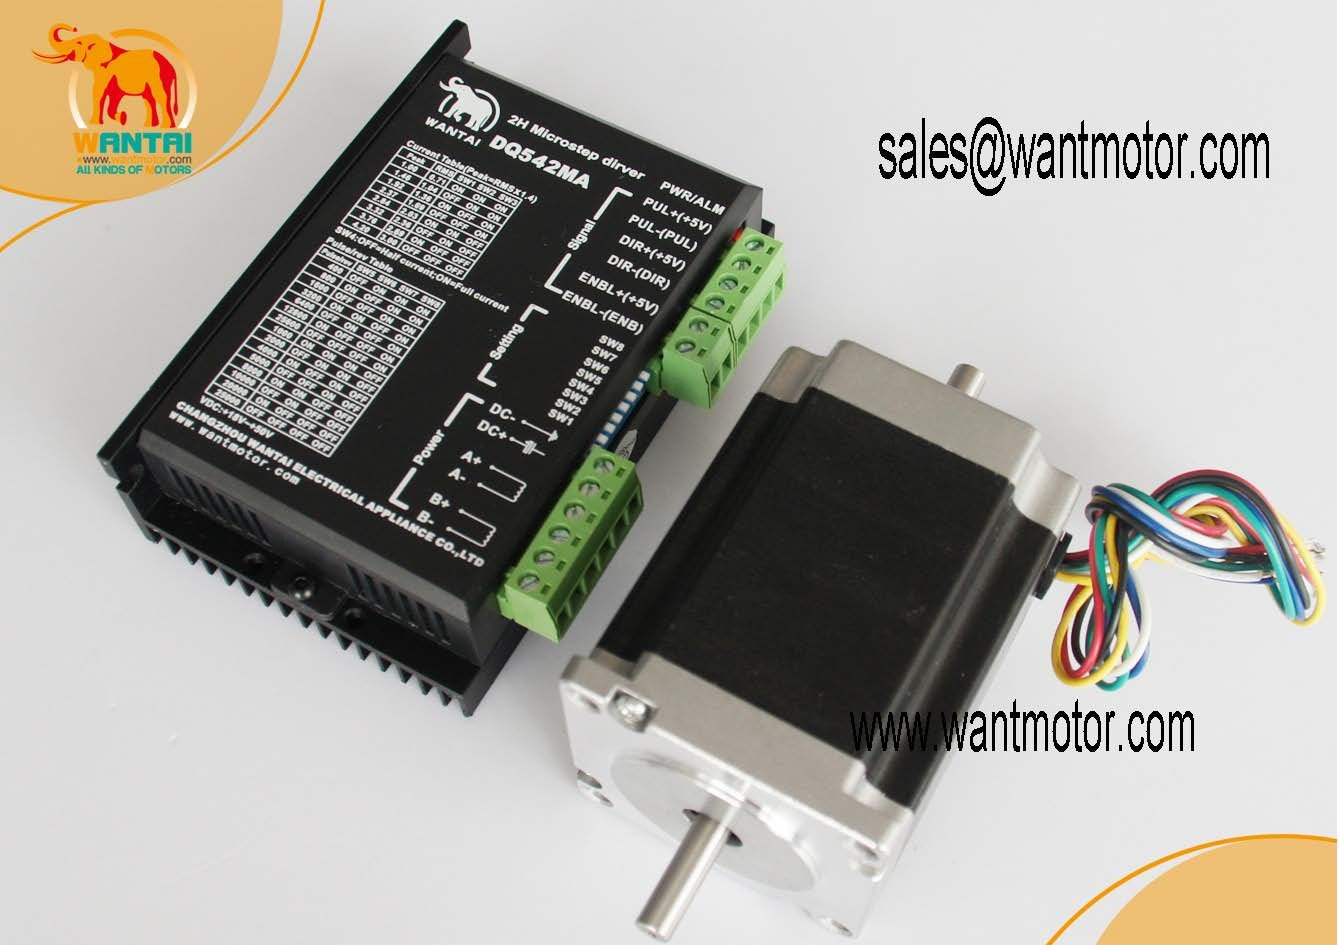 Dual Shaft 6 LEADS CNC Mill Nema23 Stepper Motor 270OZ-In ,3.0A,57BYGH633 Control DQ542MA with 4.2A/50V/125Microstep Kit lucia tucci подвесная люстра lucia tucci fiori di rose 106 3